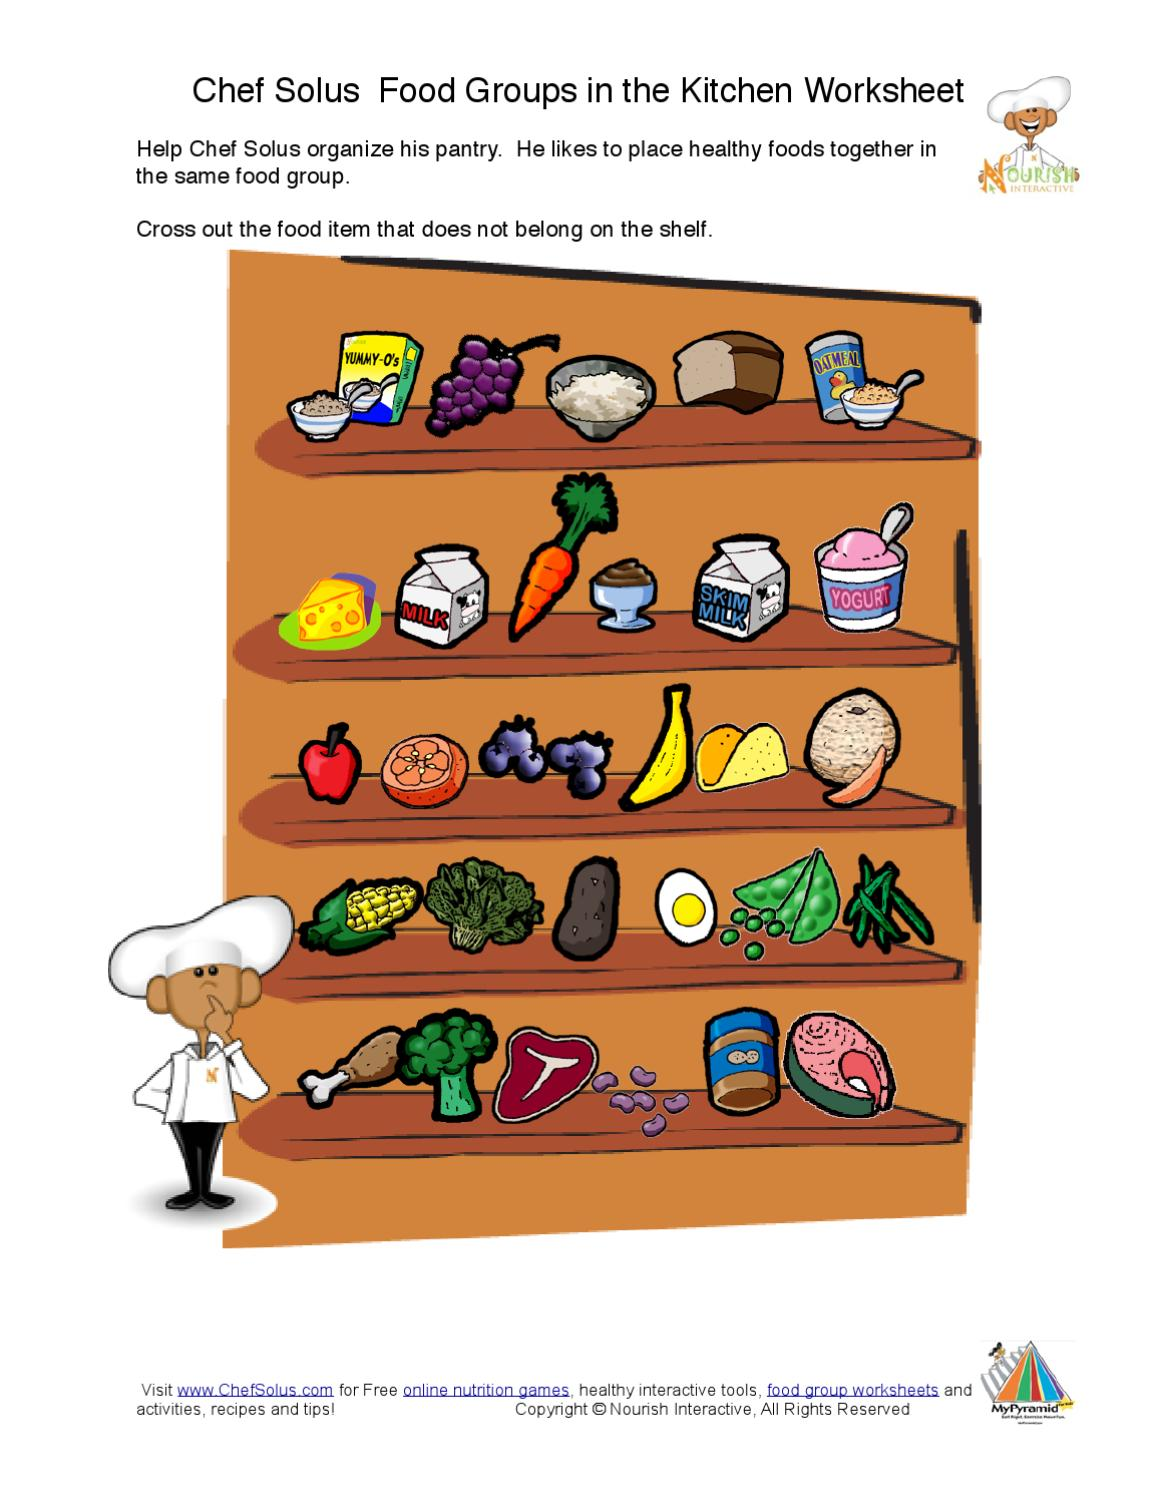 worksheet Which Does Not Belong Worksheet kids food groups fun worksheet activities printable nutrition education pages by nieves hita issuu